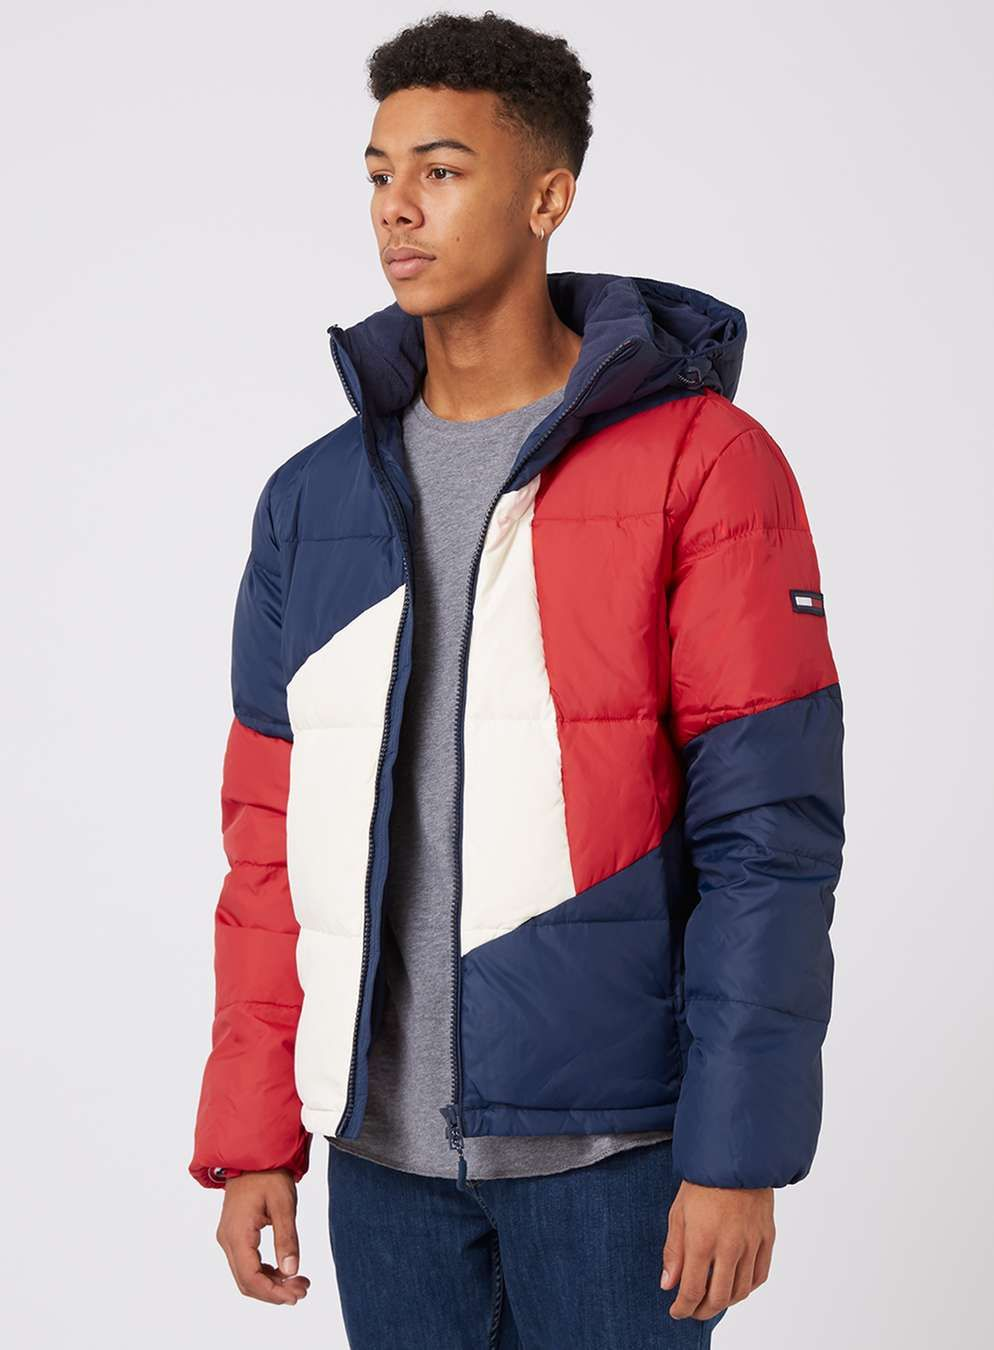 756bb2d89a04 TOMMY HILFIGER Padded Colour Block Jacket - Men s Coats   Jackets - Clothing  - TOPMAN